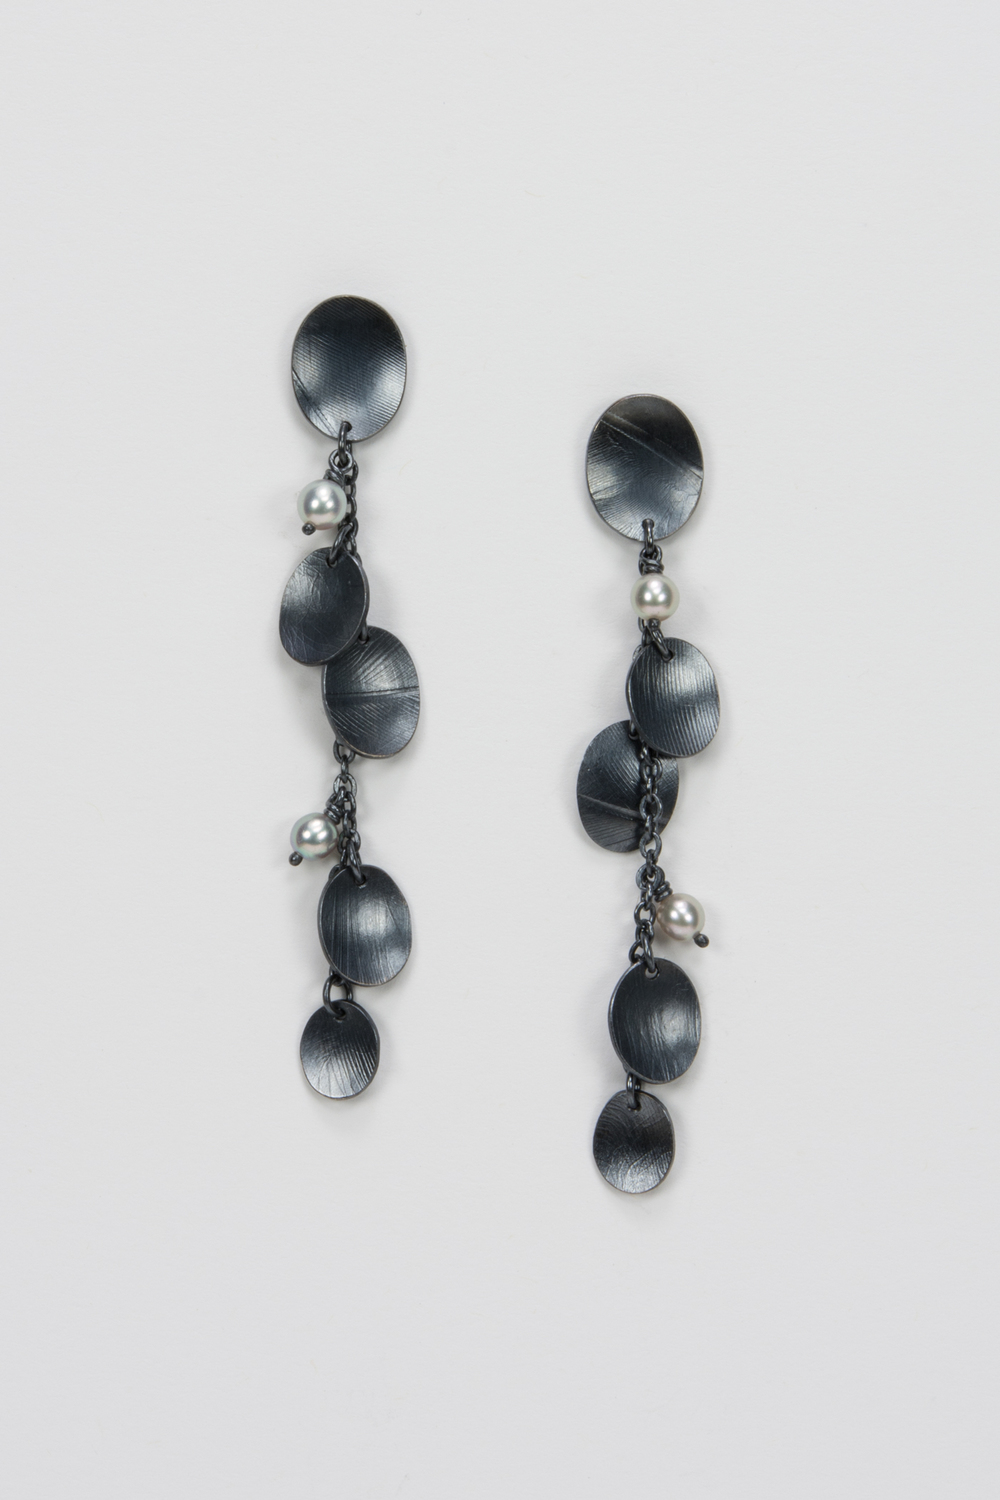 medium dangle post earring - oxidized sterling and pearls - 460.00